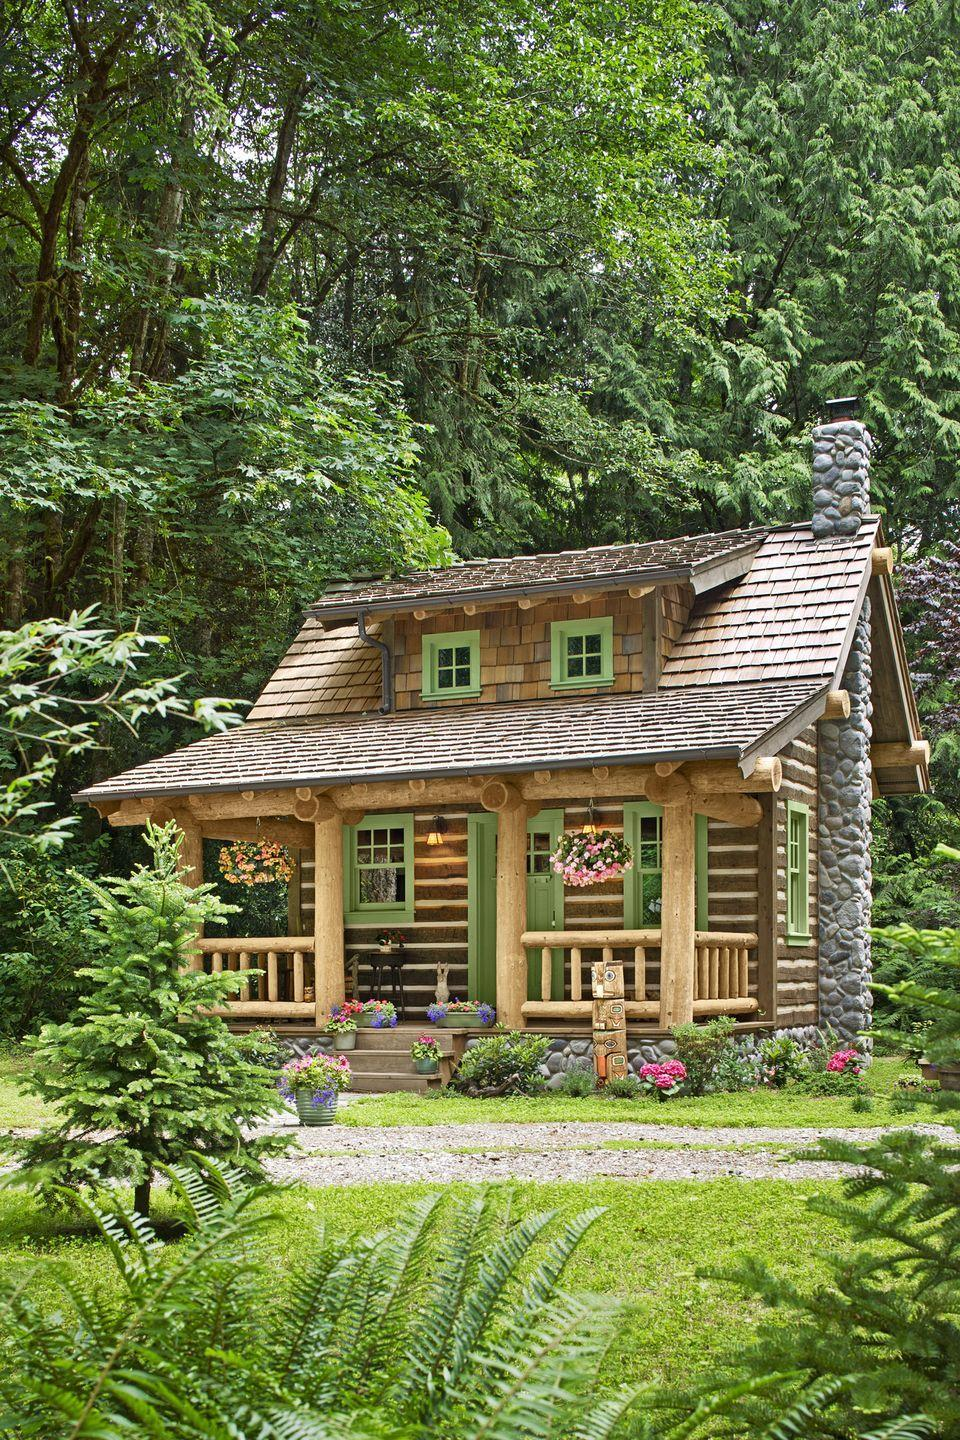 """<p>A hand-built hideaway—short on space, tall on charm—looks right at home among the Douglas firs of Port Orchard, Washington.</p><p><a class=""""link rapid-noclick-resp"""" href=""""https://www.amazon.com/Tiny-House-Live-Small-Dream/dp/0525576614?tag=syn-yahoo-20&ascsubtag=%5Bartid%7C10072.g.35047961%5Bsrc%7Cyahoo-us"""" rel=""""nofollow noopener"""" target=""""_blank"""" data-ylk=""""slk:SHOP TINY HOUSE COFFEE TABLE BOOKS"""">SHOP TINY HOUSE COFFEE TABLE BOOKS</a></p>"""